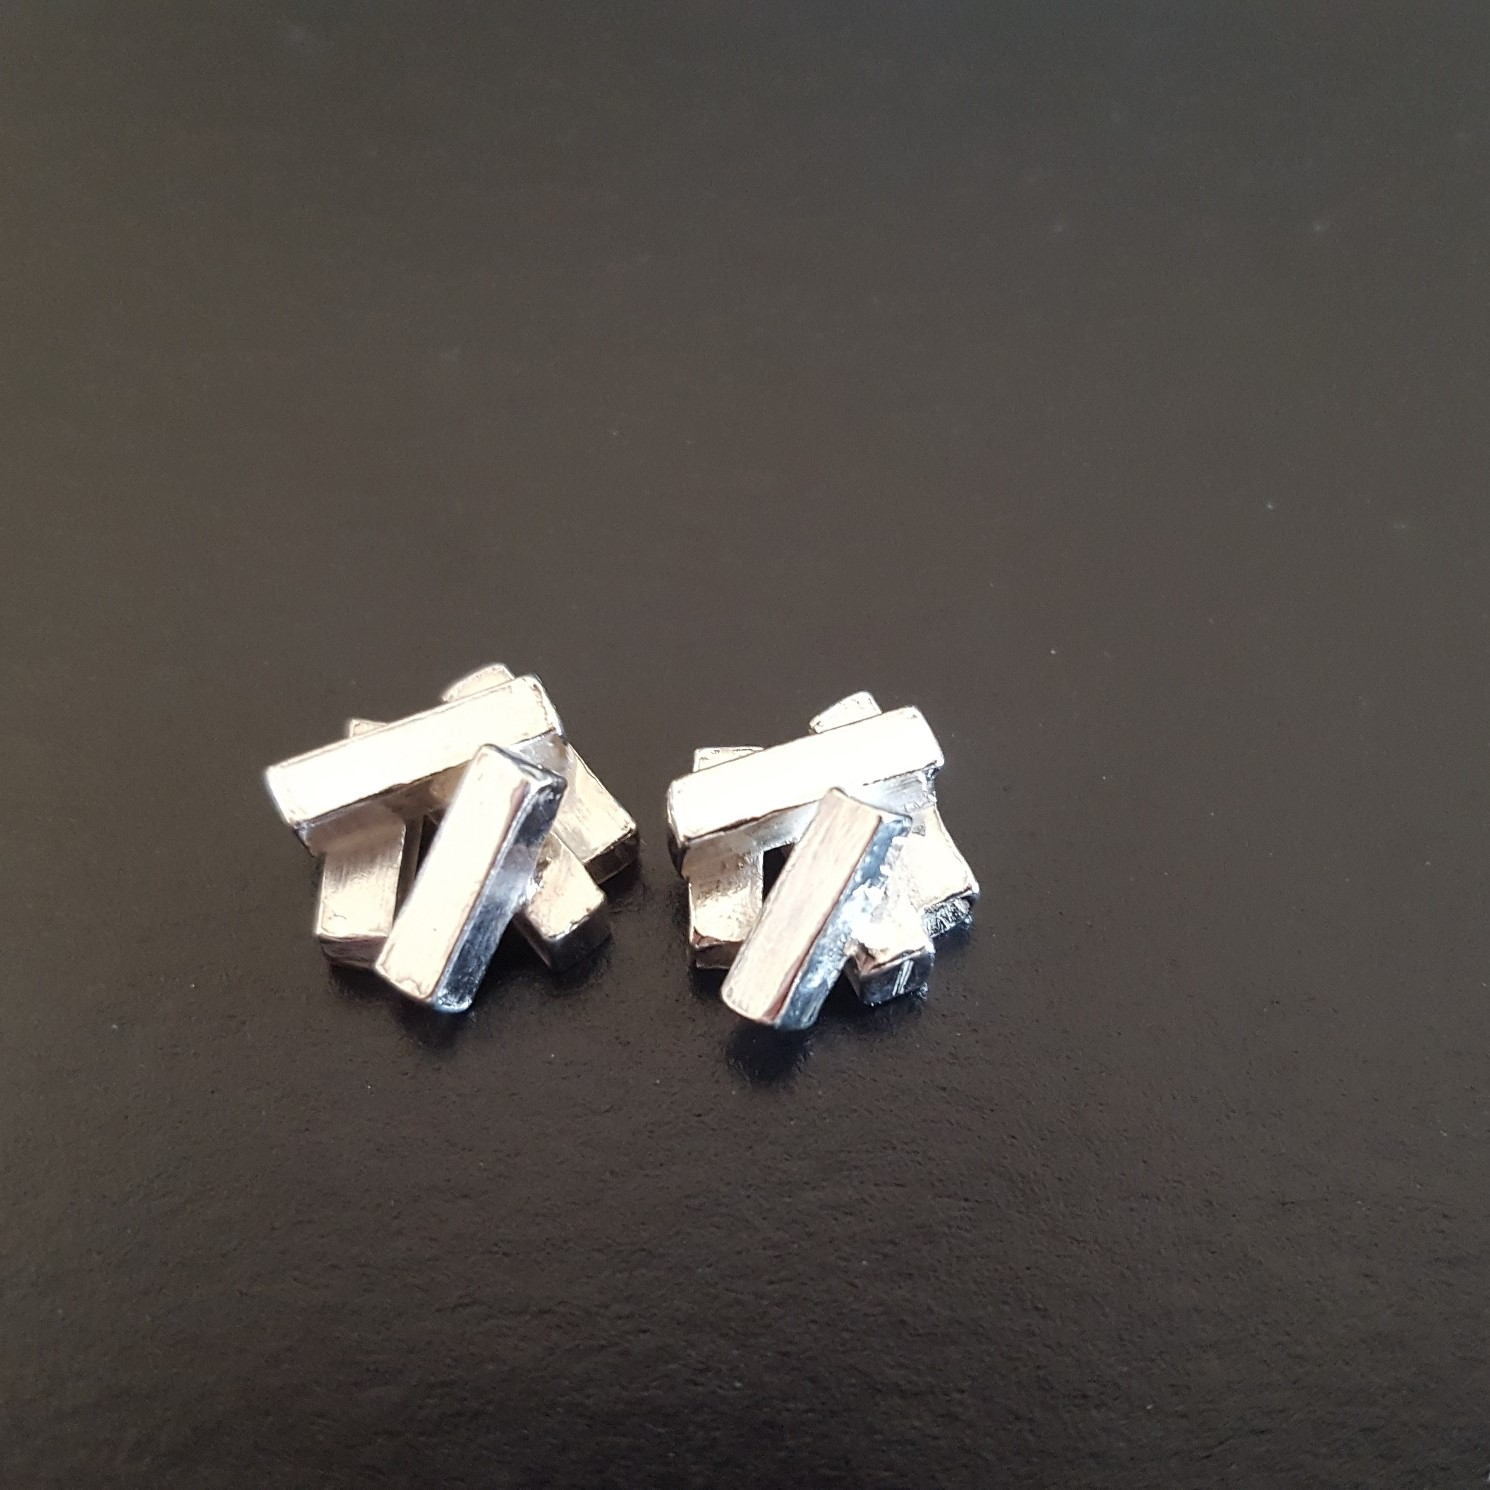 Tectonic cluster earrings